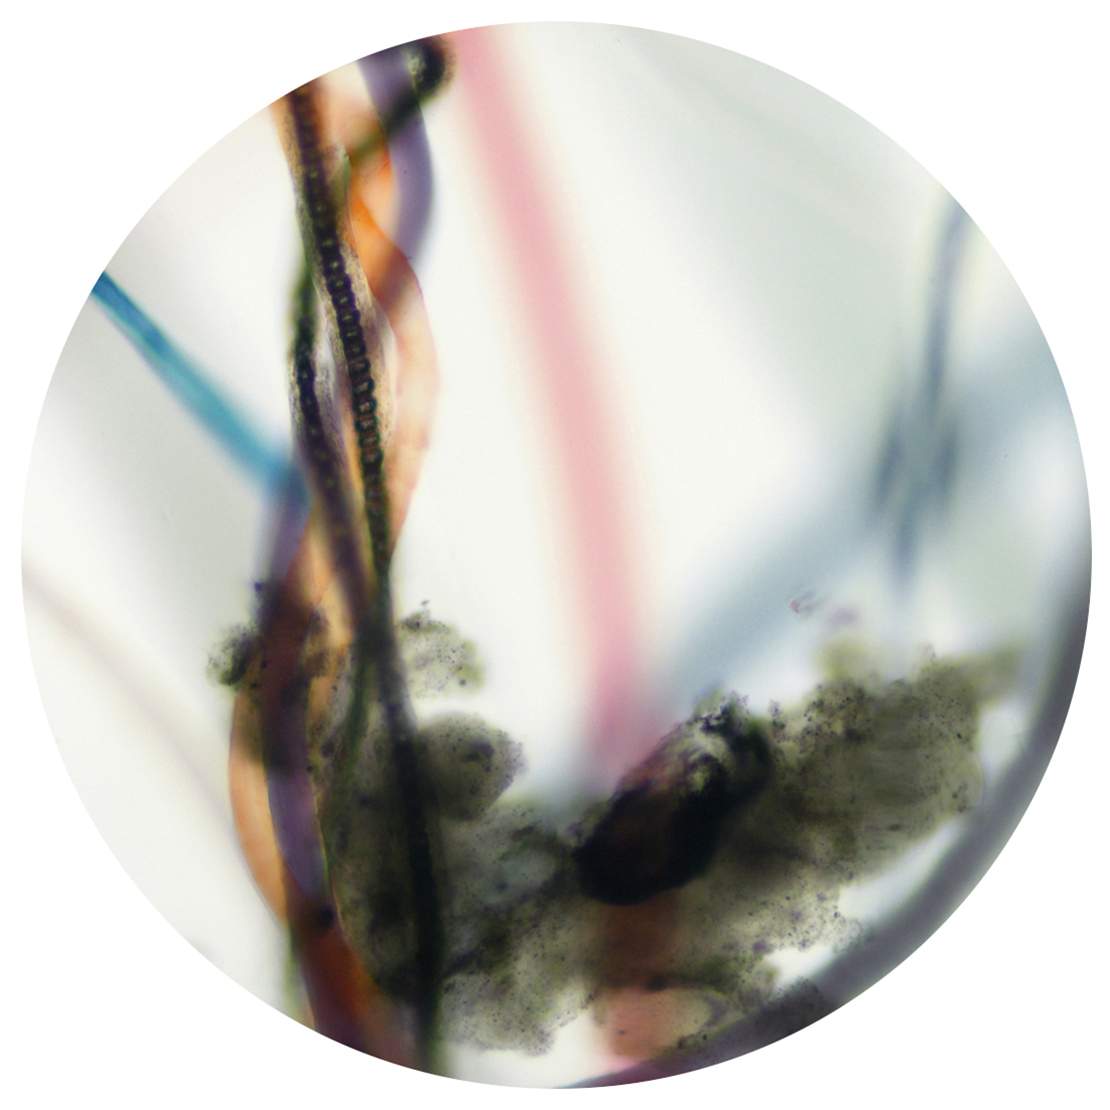 Sean Miller, Microscopy of Dust Sample Collected from Centre Pompidou, Paris, France.